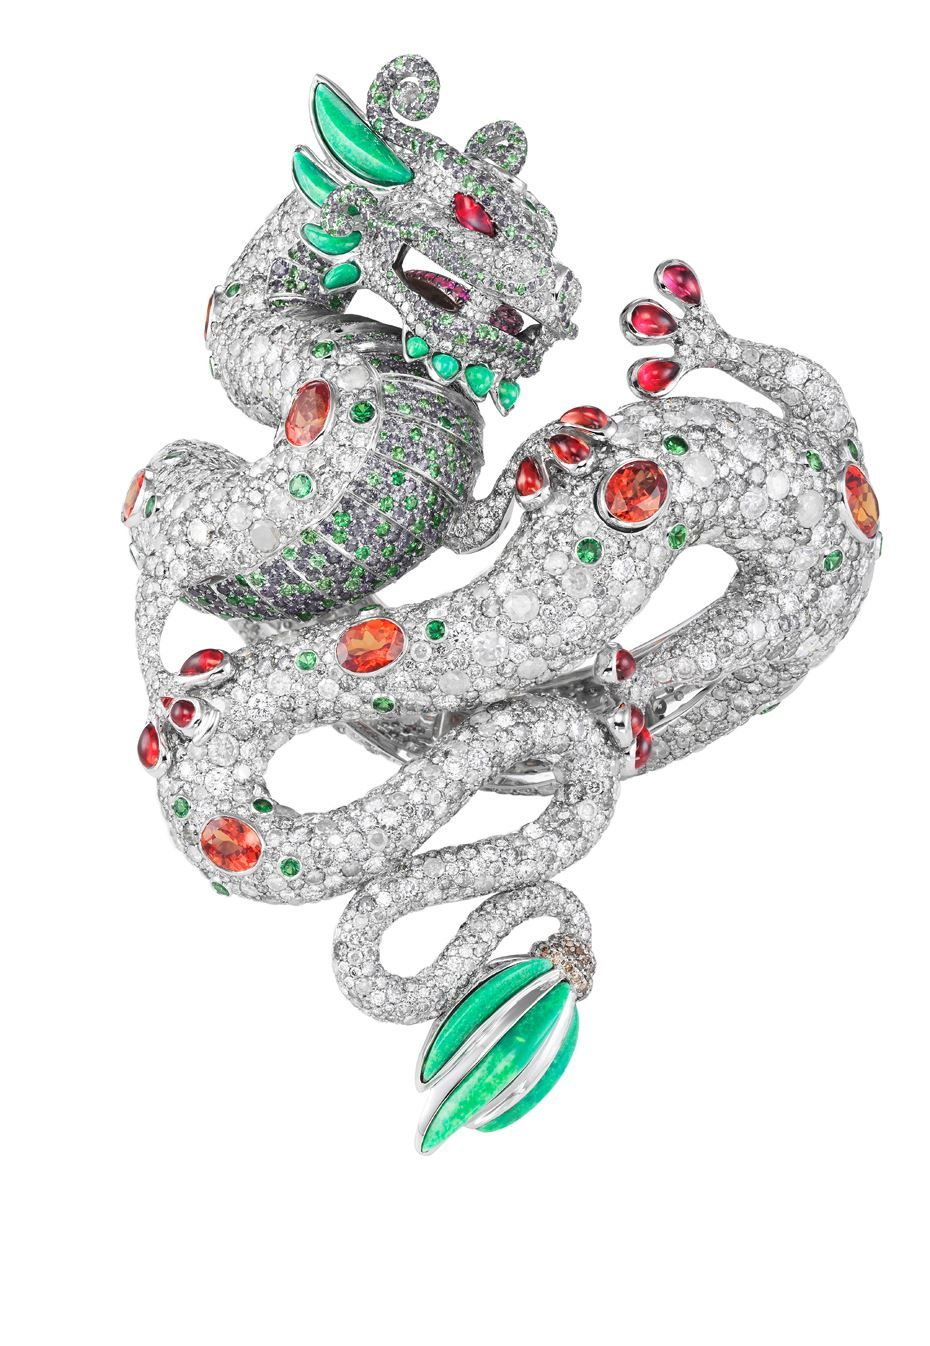 Daring and dangerous harumi klossowska de rola for chopard animal harumi klossowska for chopard dragon bracelet features rubies diamonds emerald and turquoise and fuses the major cultural symbols of the chinese dragon buycottarizona Choice Image